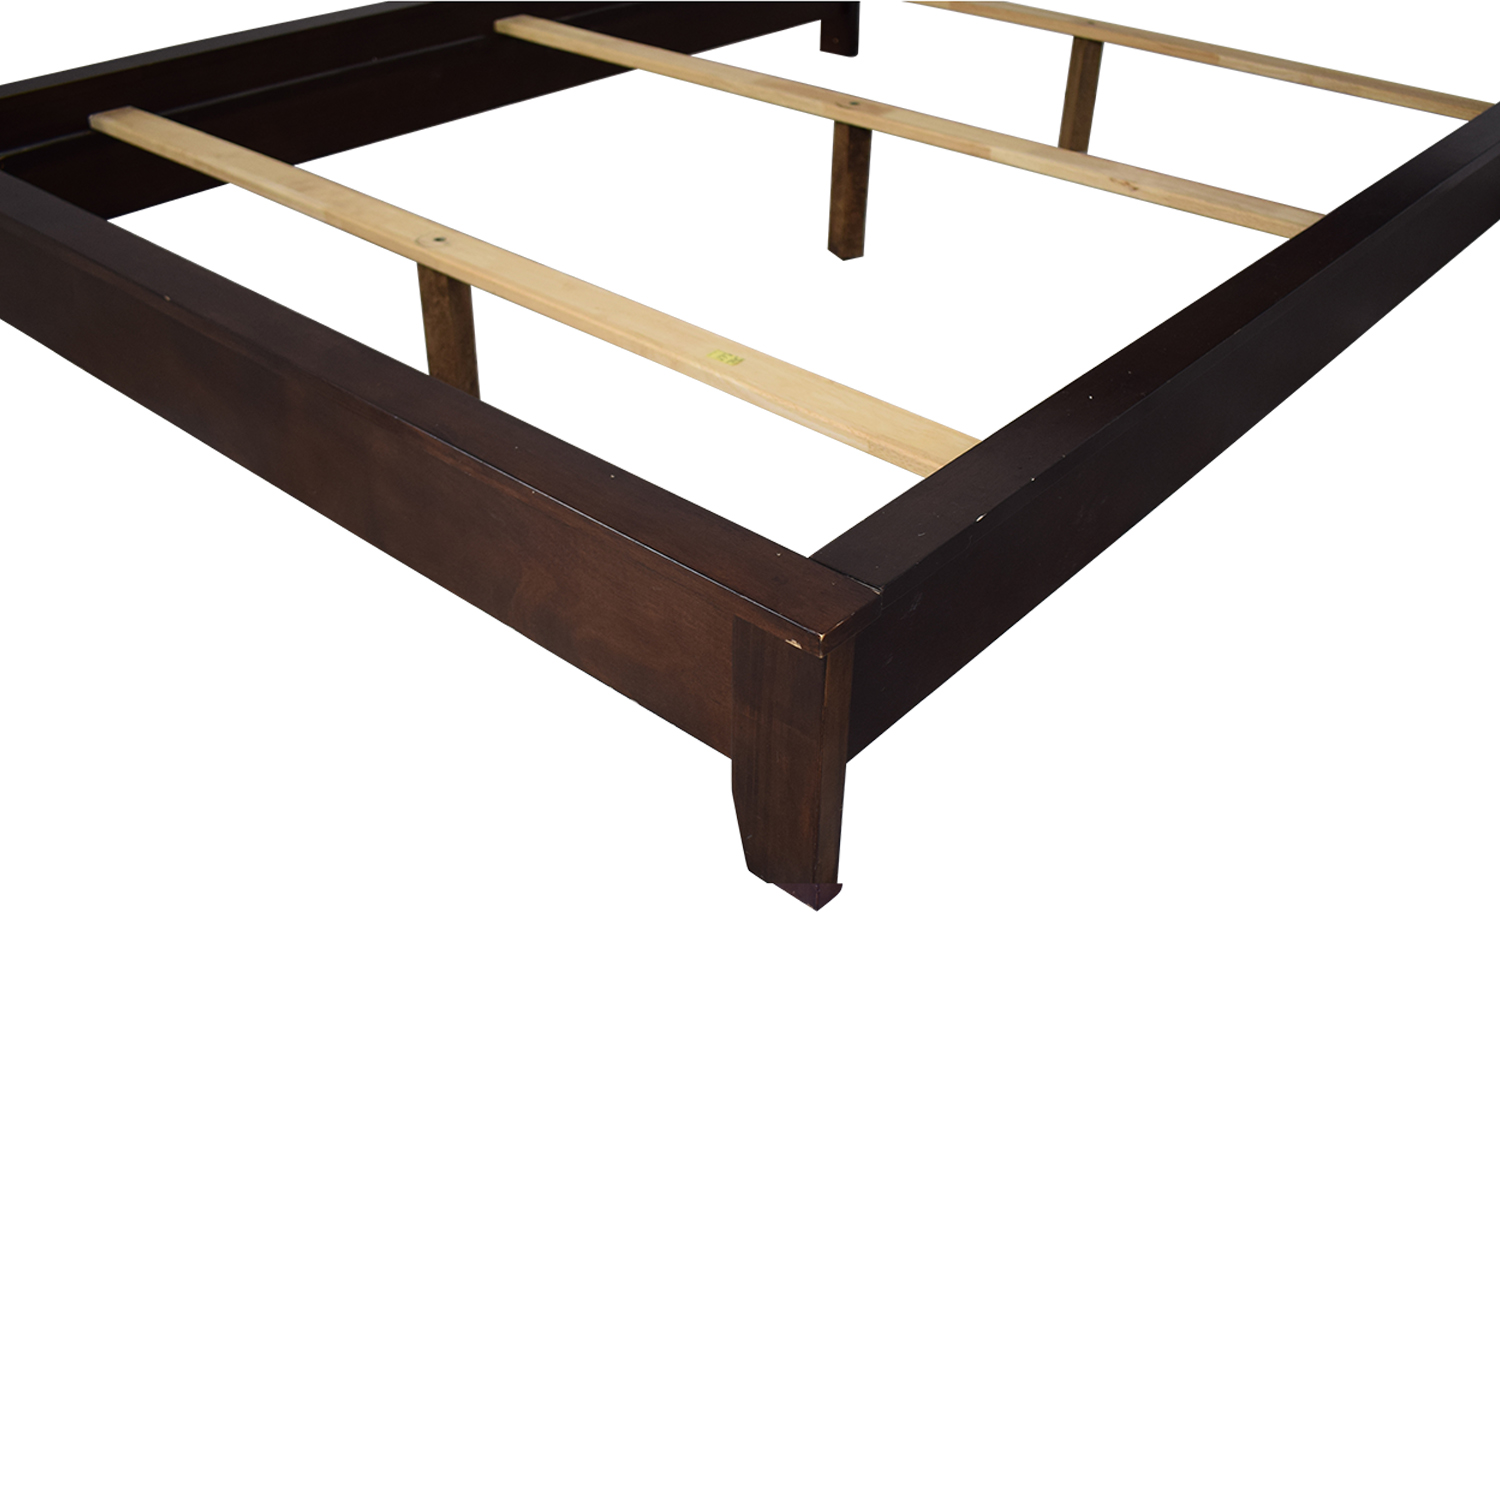 American Furniture Queen Bed Frame / Beds